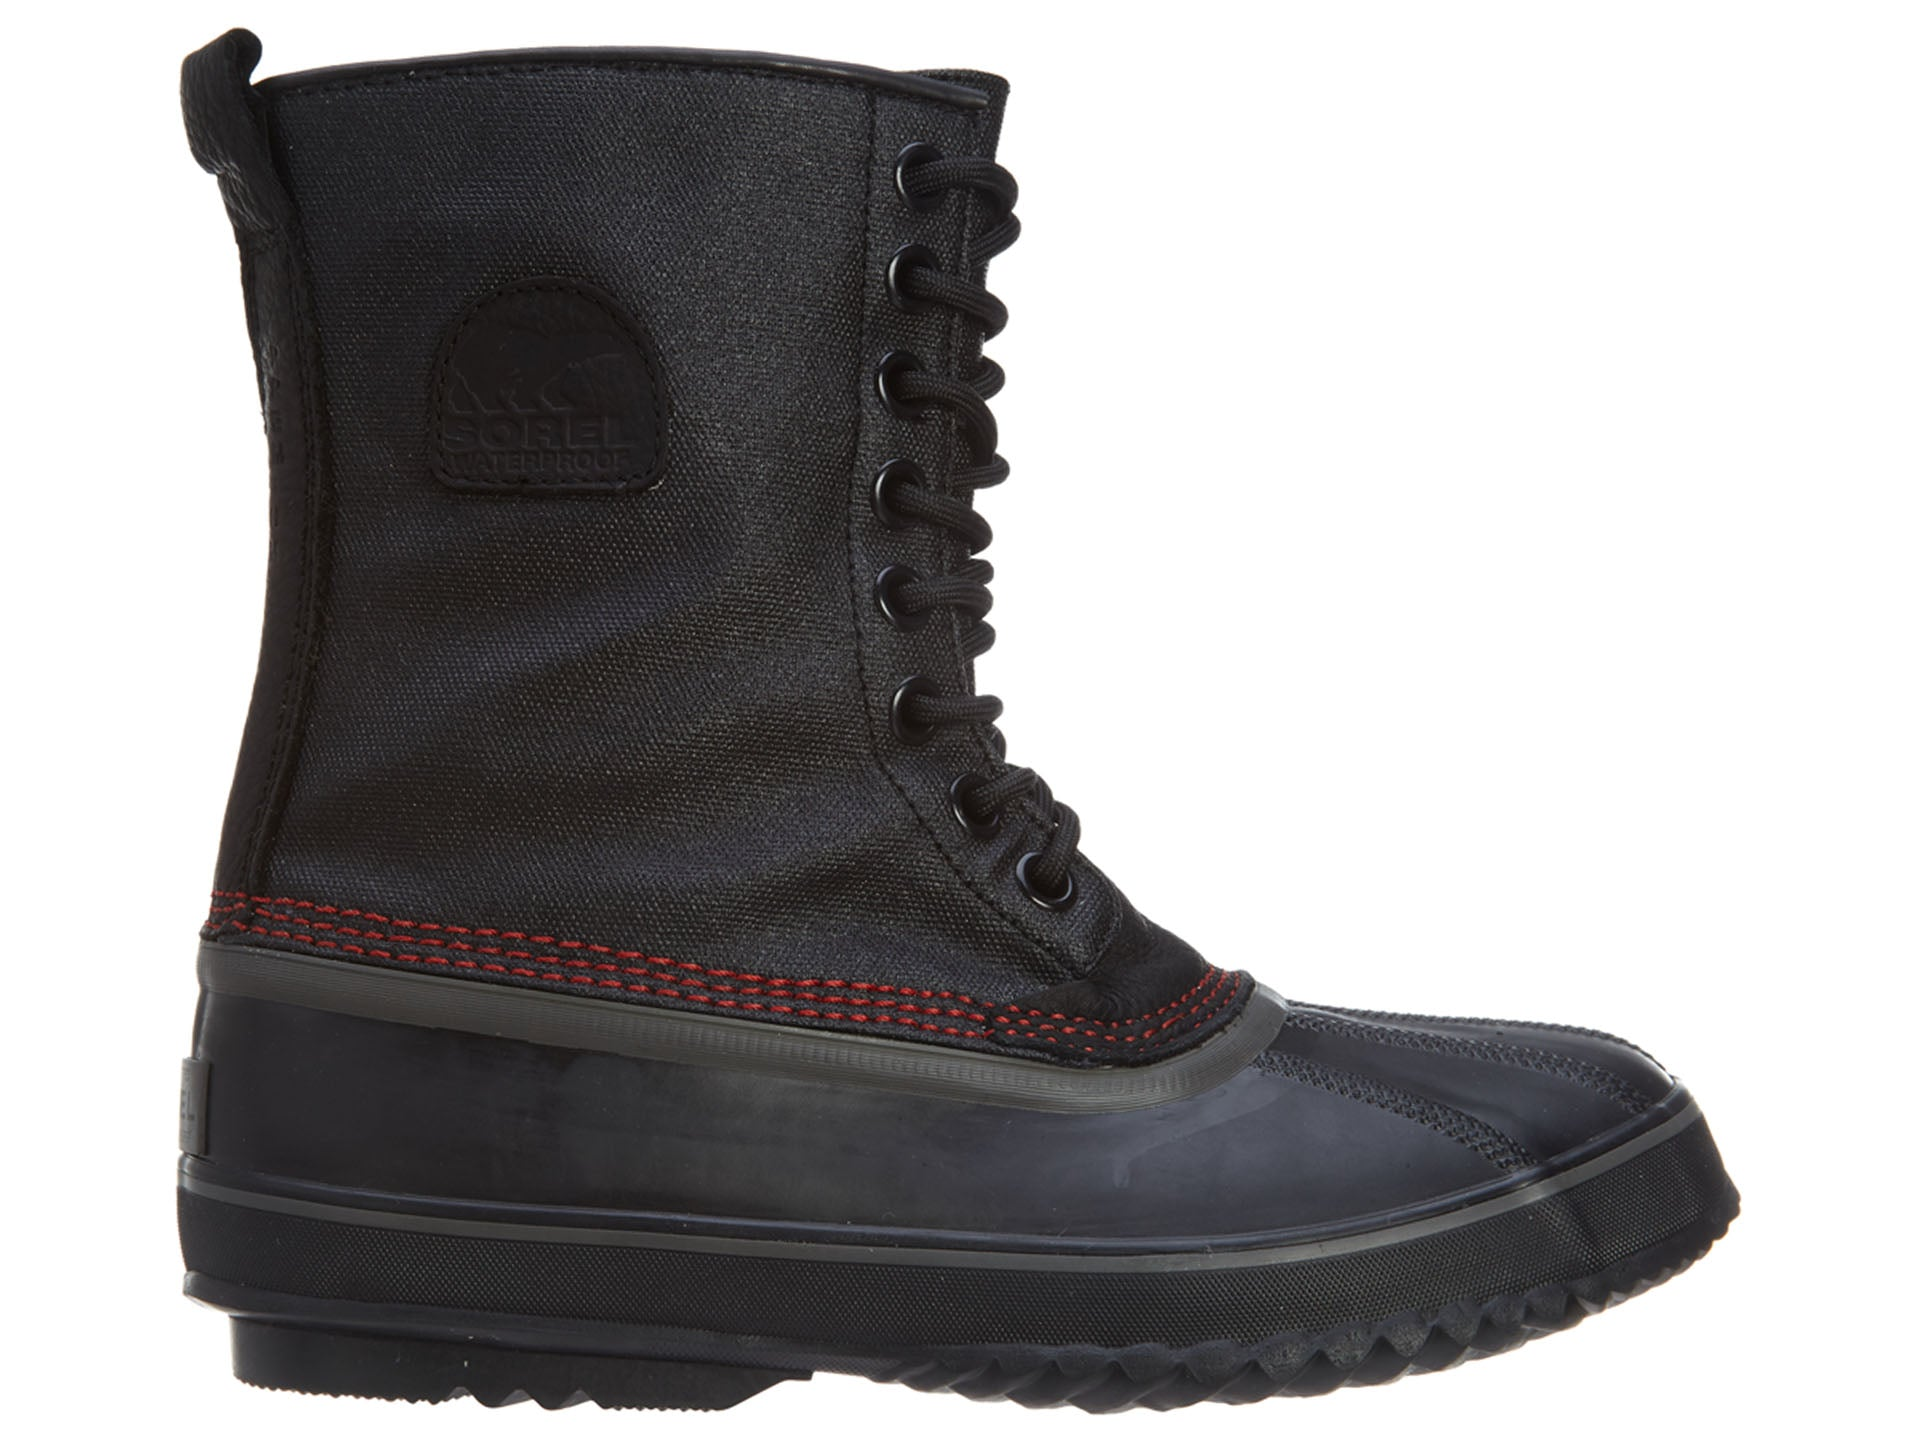 ce62f71cfa52 Sorel 1964 Premium T Cvs Boot Mens Style   Nm1560